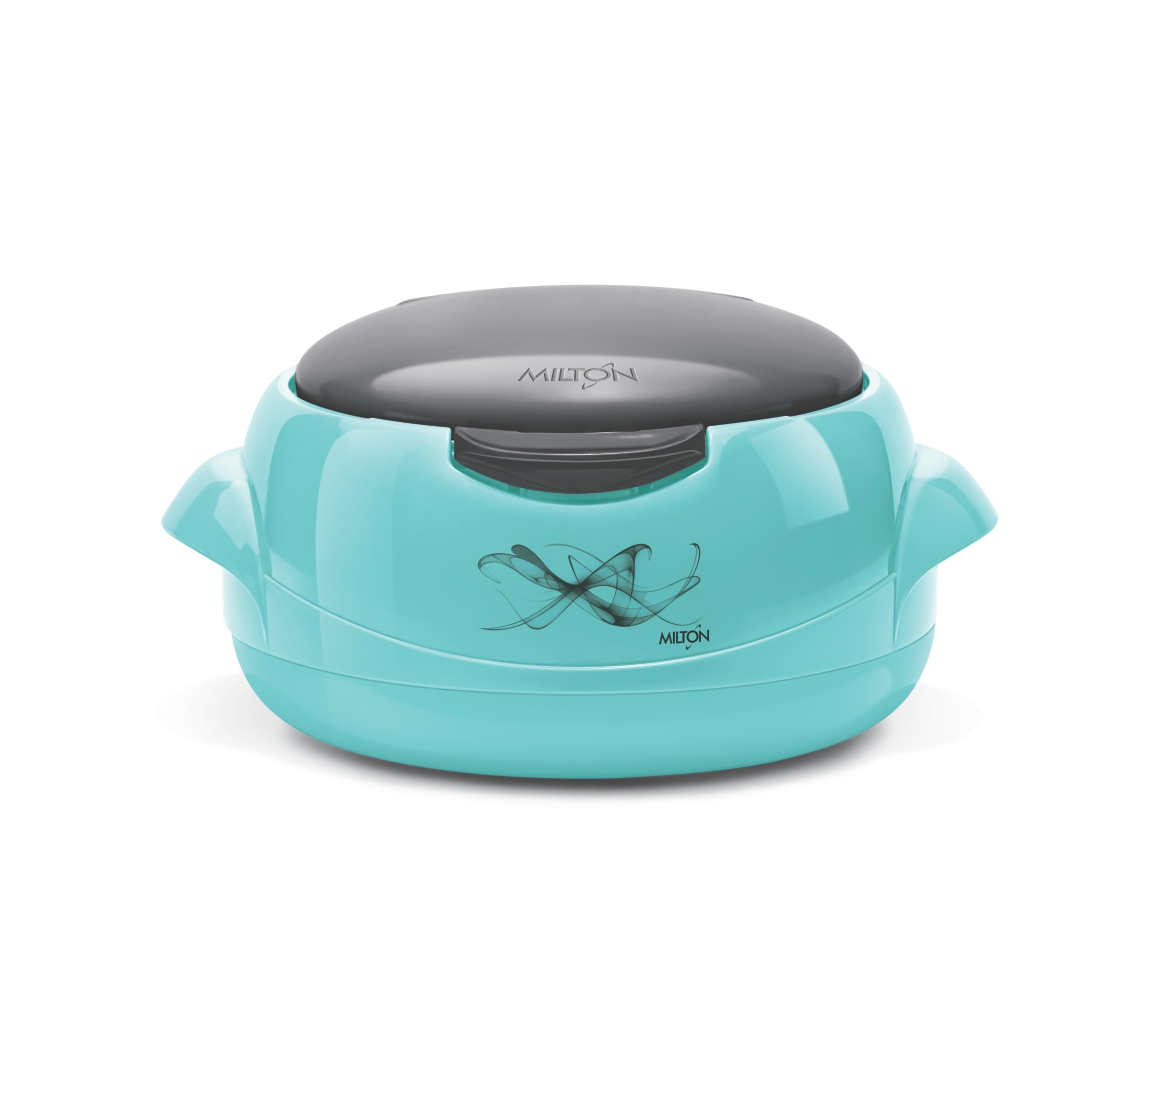 MILTON MICROWOW ONE TOUCH CASSEROLE 1500 1500 ML